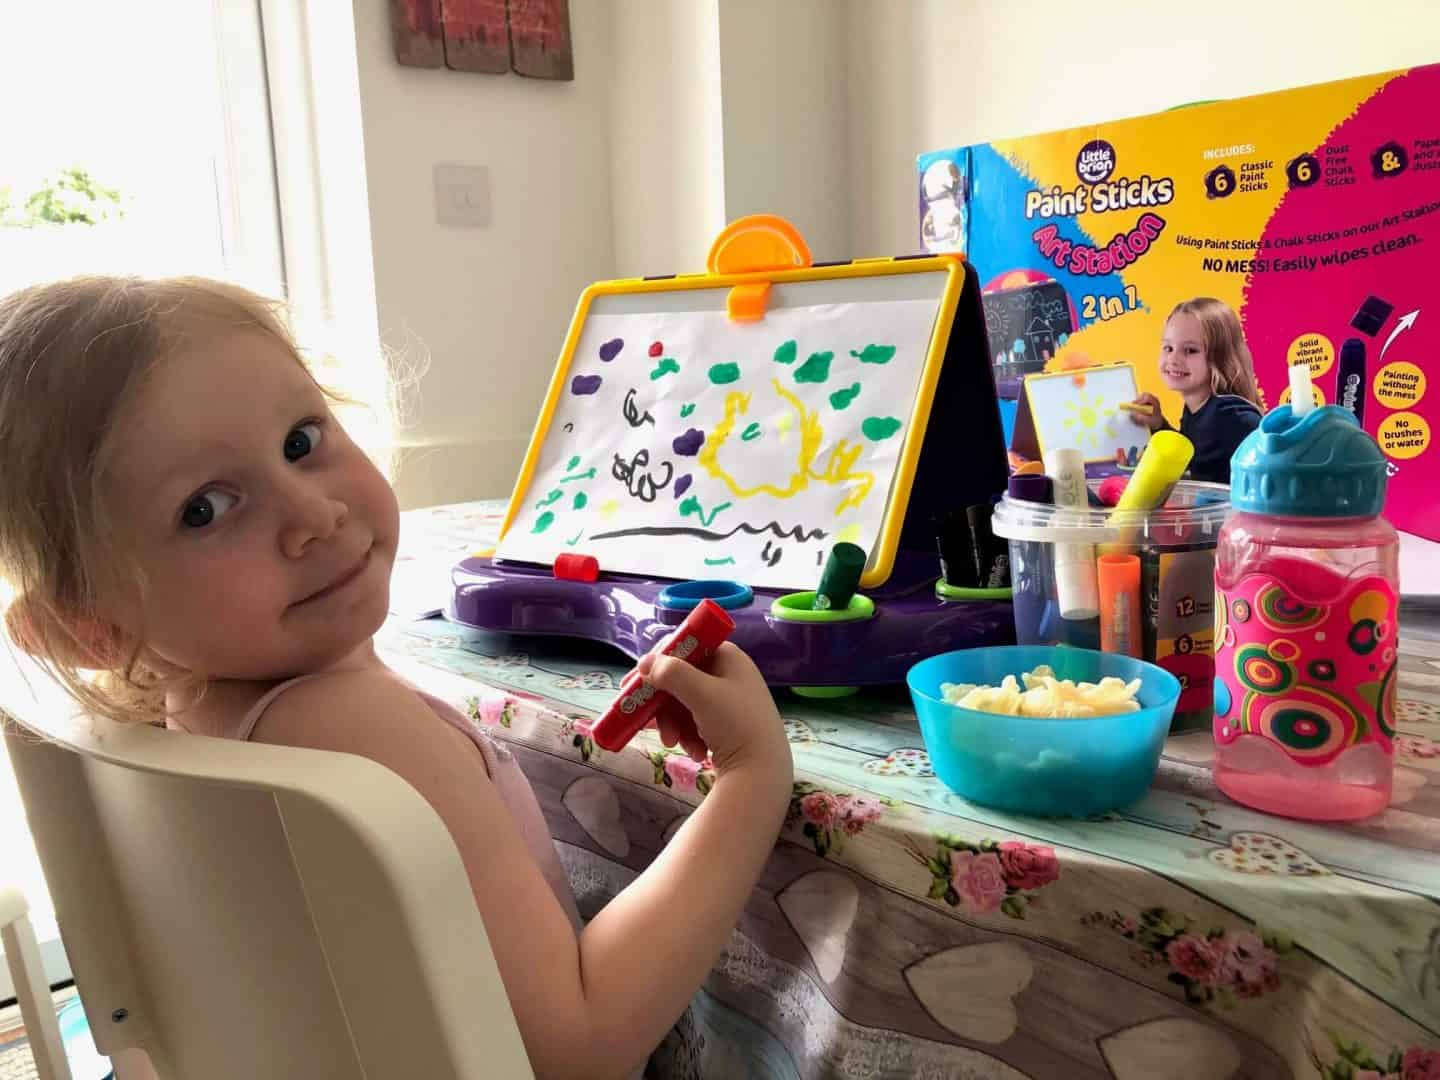 L with her paint station and paint sticks